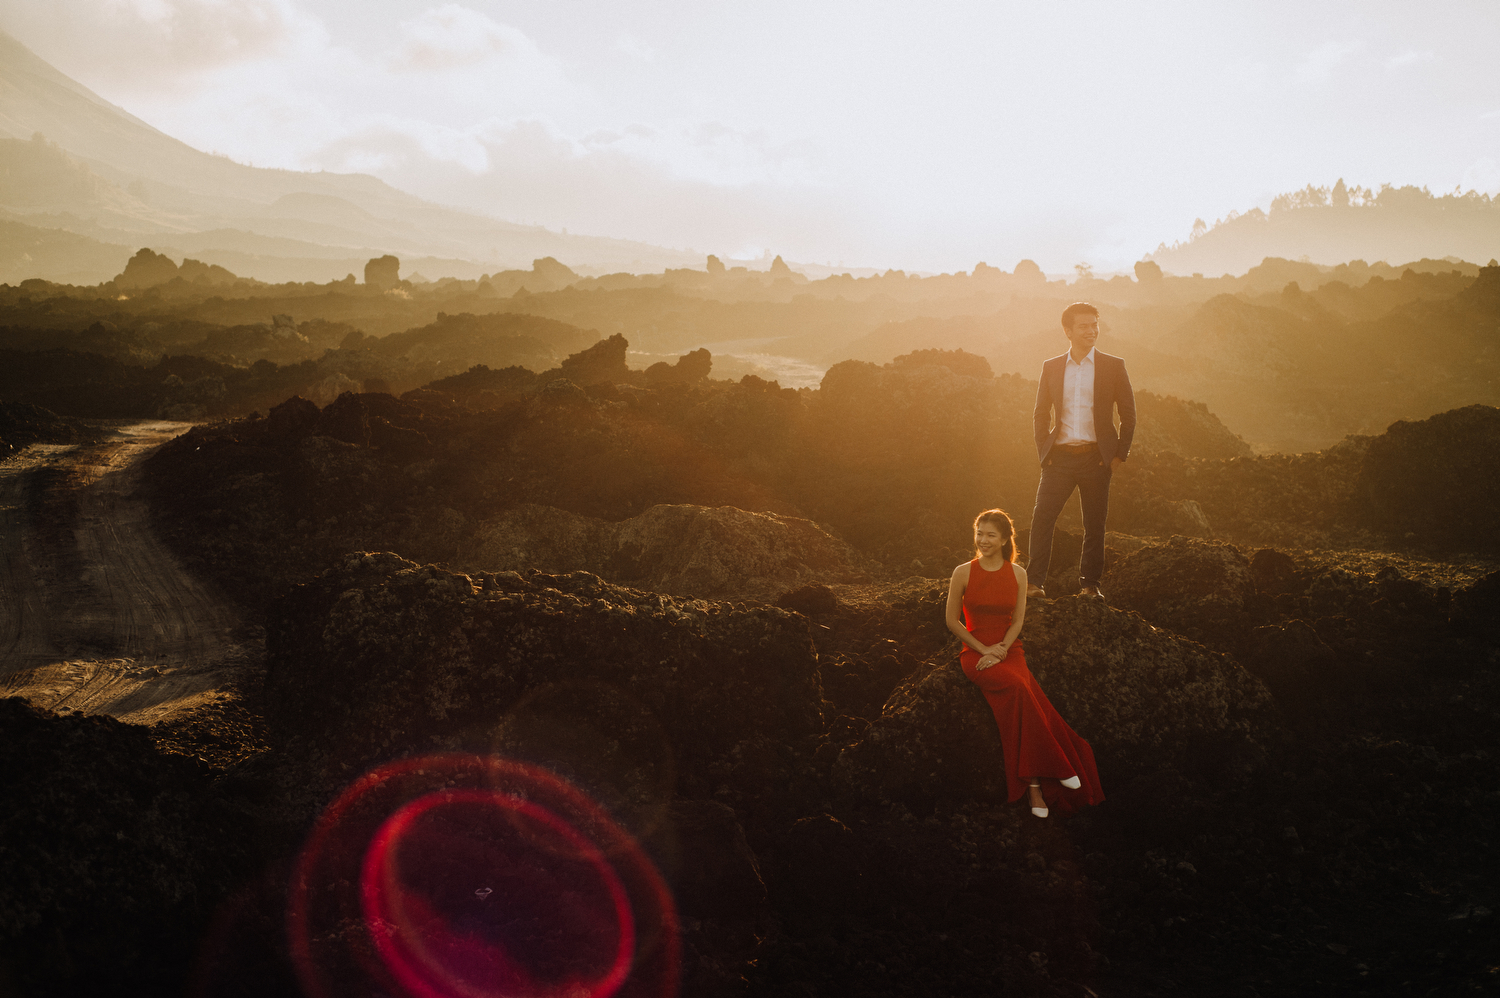 preweddinginbali-bali-batur-ubud-diktatphotography-engagemnet-baliweddingphotographer-weddinginbali-8